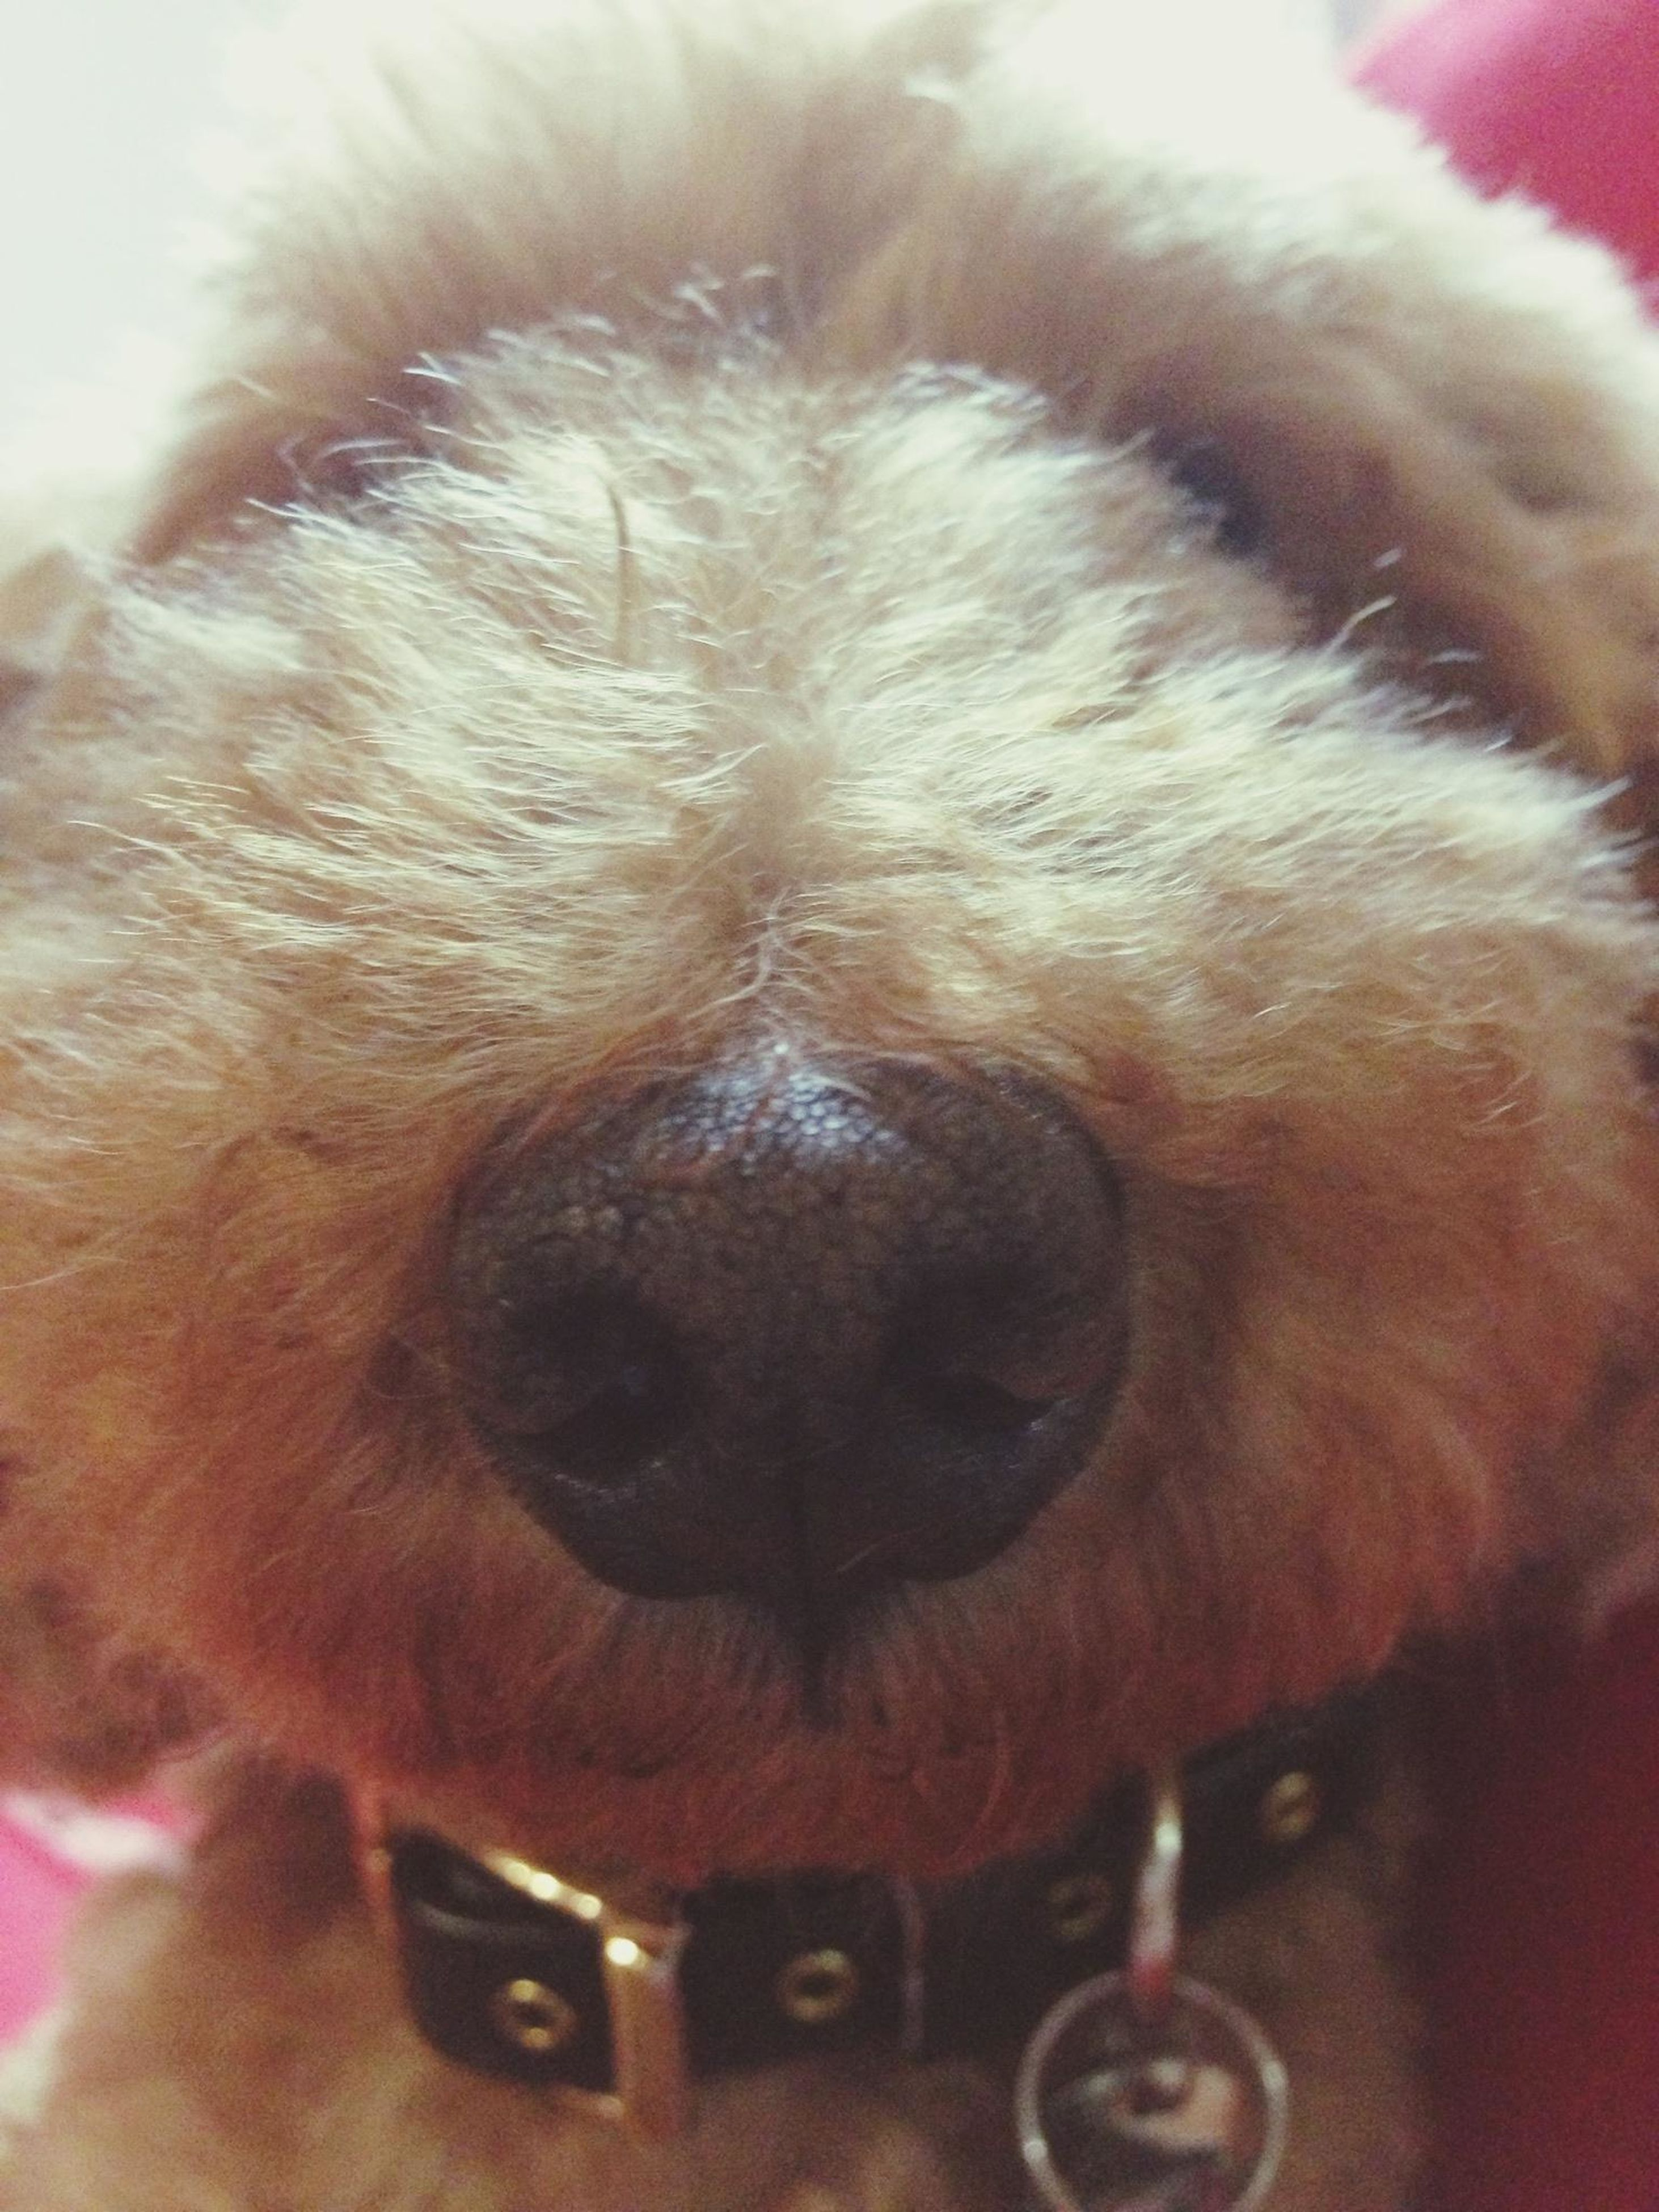 domestic animals, one animal, animal themes, pets, dog, mammal, close-up, animal head, animal body part, indoors, portrait, part of, looking at camera, extreme close-up, extreme close up, snout, animal eye, animal nose, focus on foreground, no people